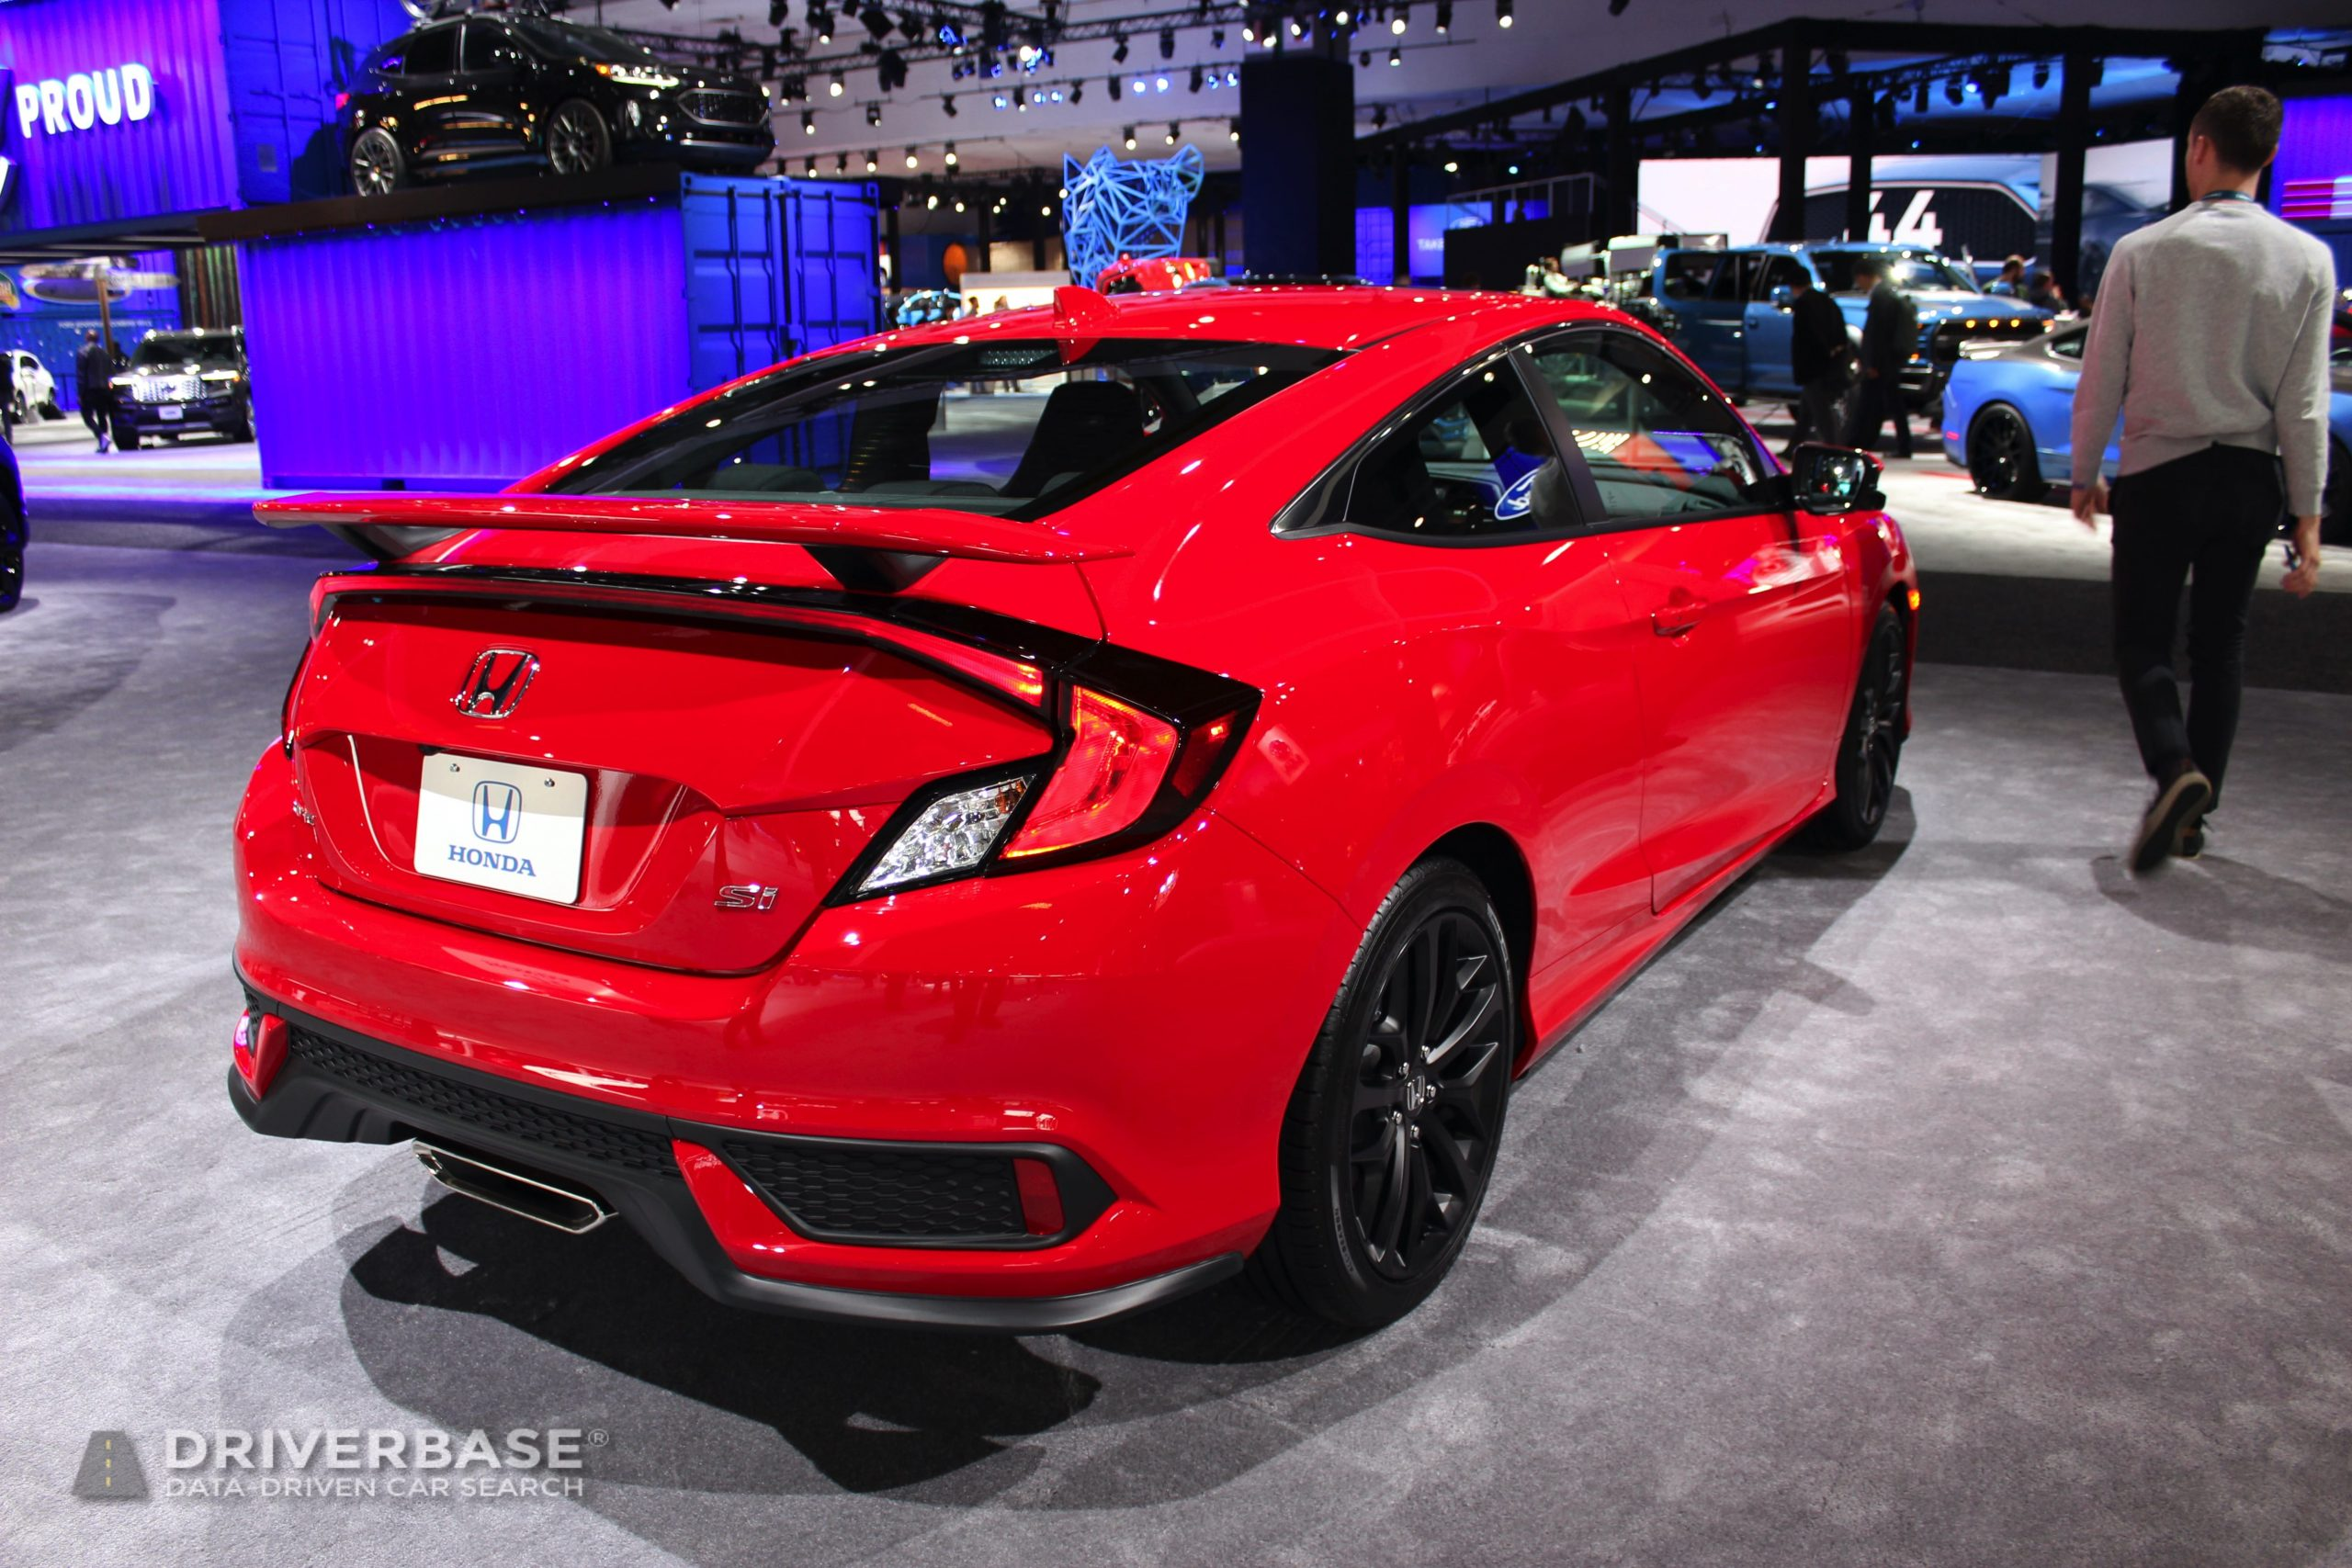 2020 Honda Civic Si at the 2019 Los Angeles Auto Show